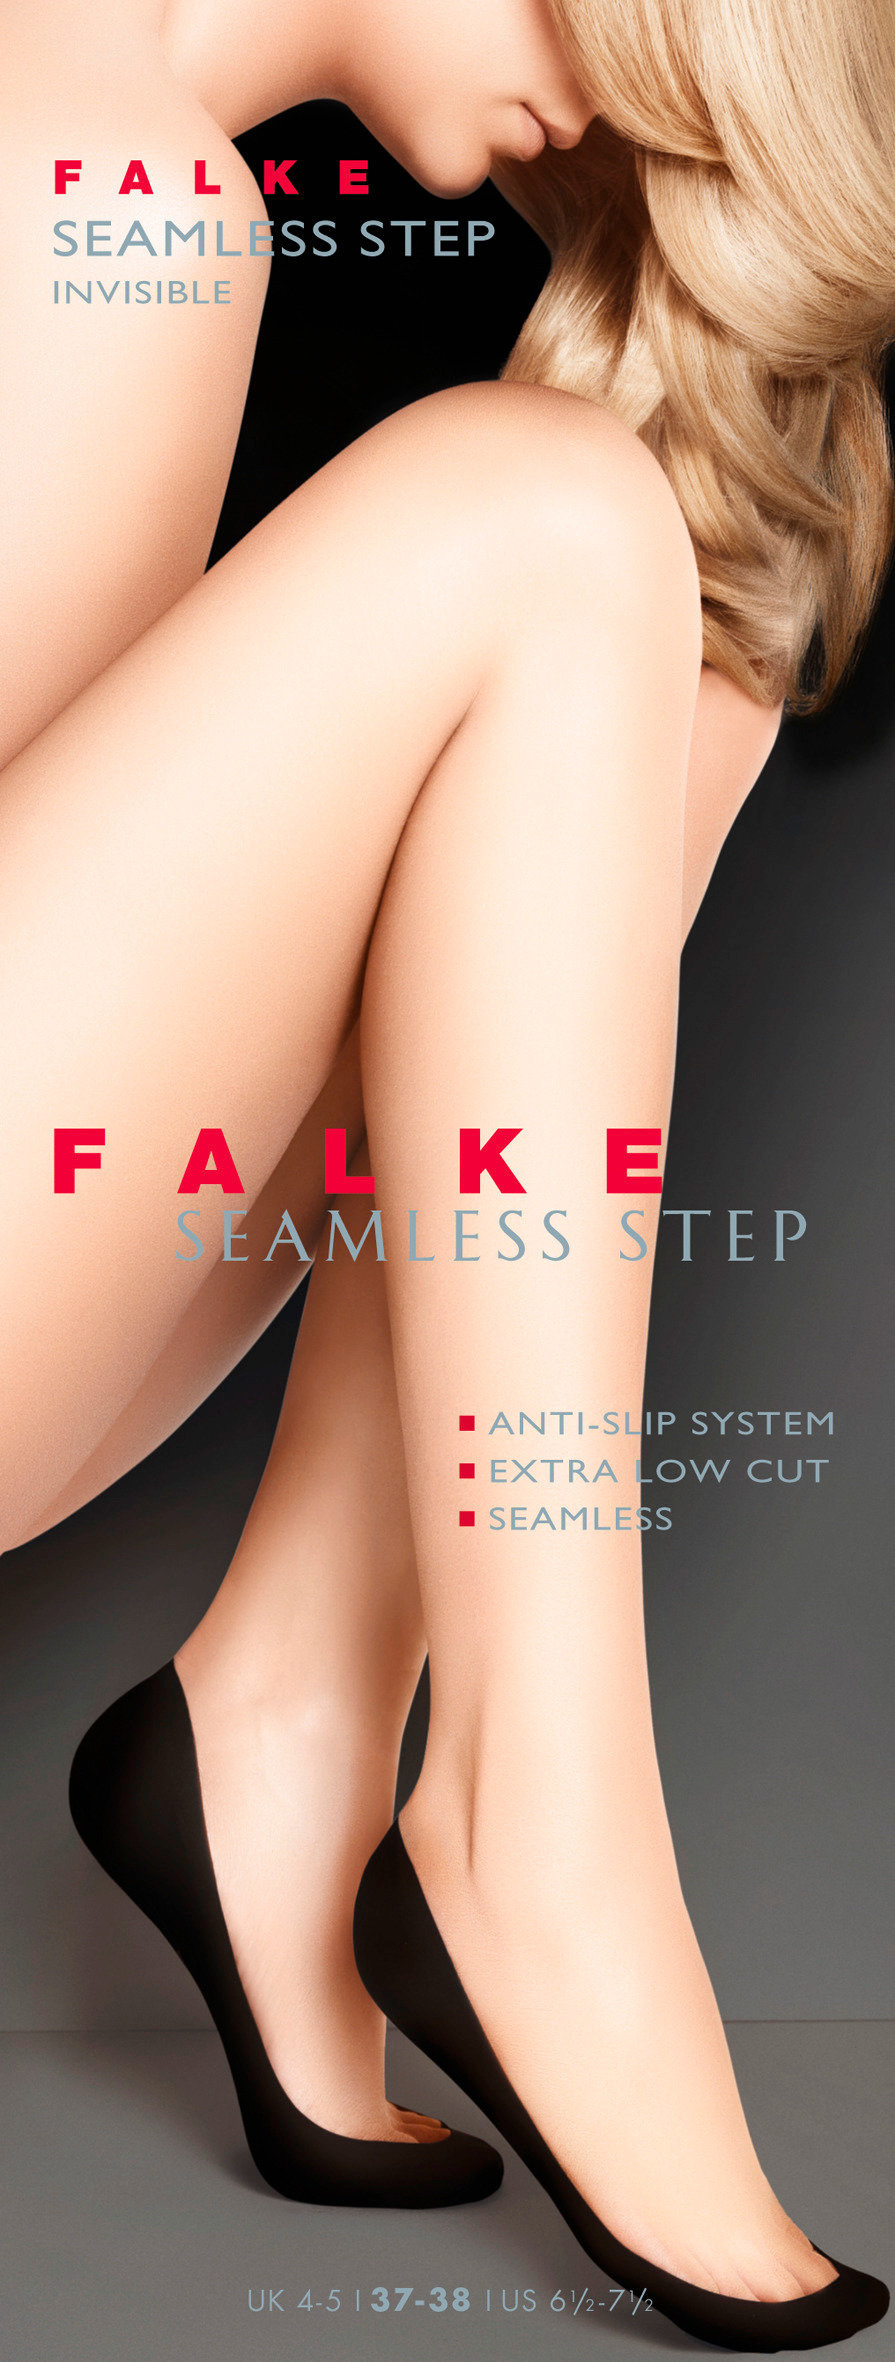 FALKE Seamless Step Damen Füßlinge POWDER